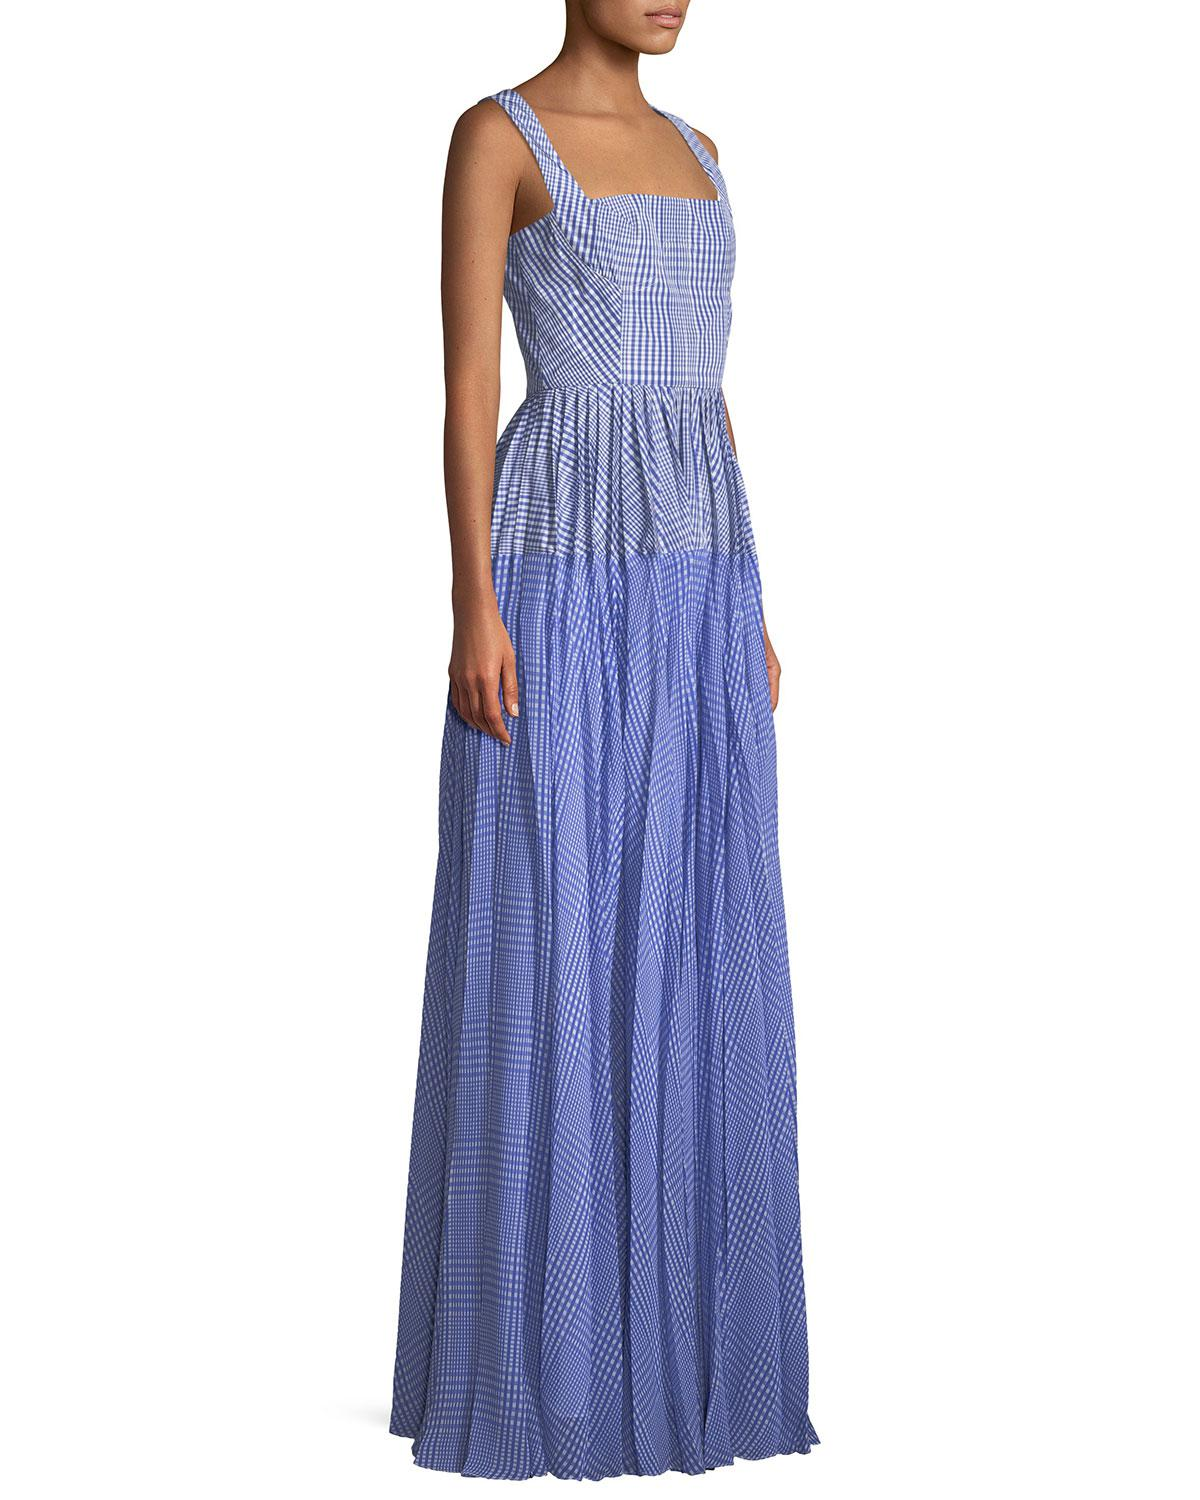 Lyst - Lela Rose Square-neck Sleeveless Plaid Gown With Pleated ...